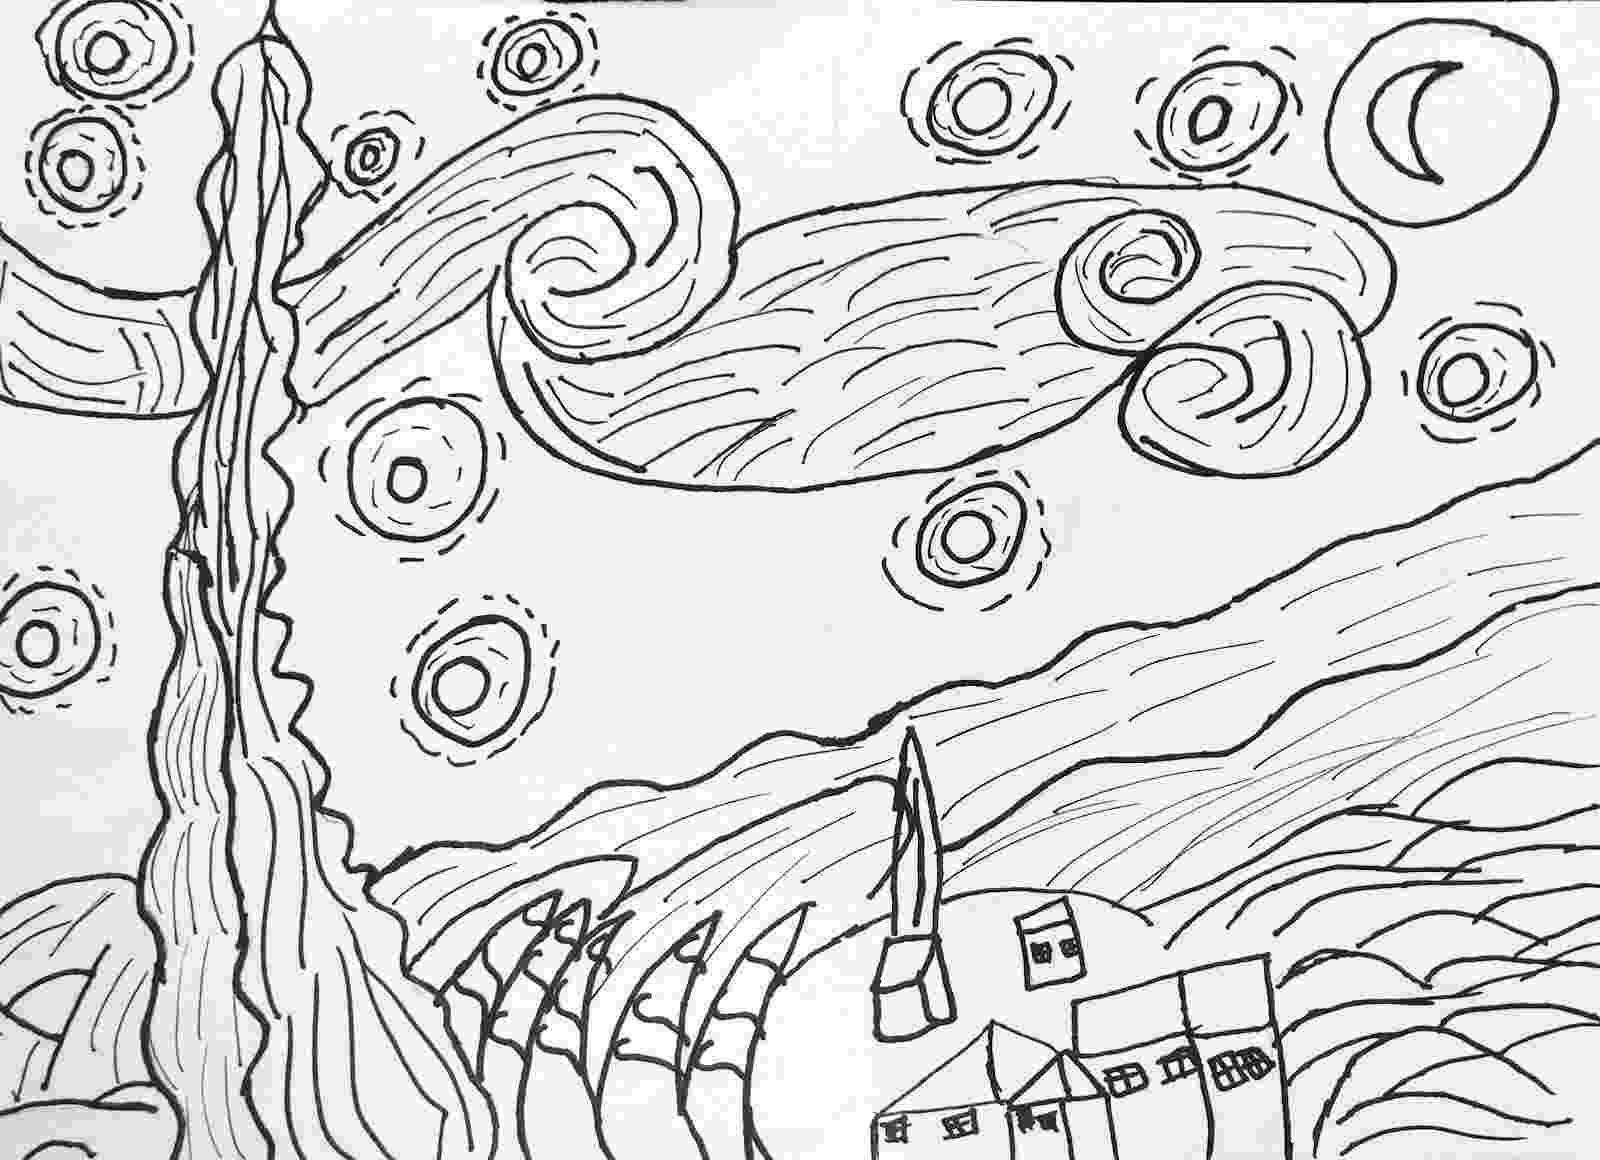 starry night coloring page 51 best images about van gogh on pinterest starry nights night page coloring starry